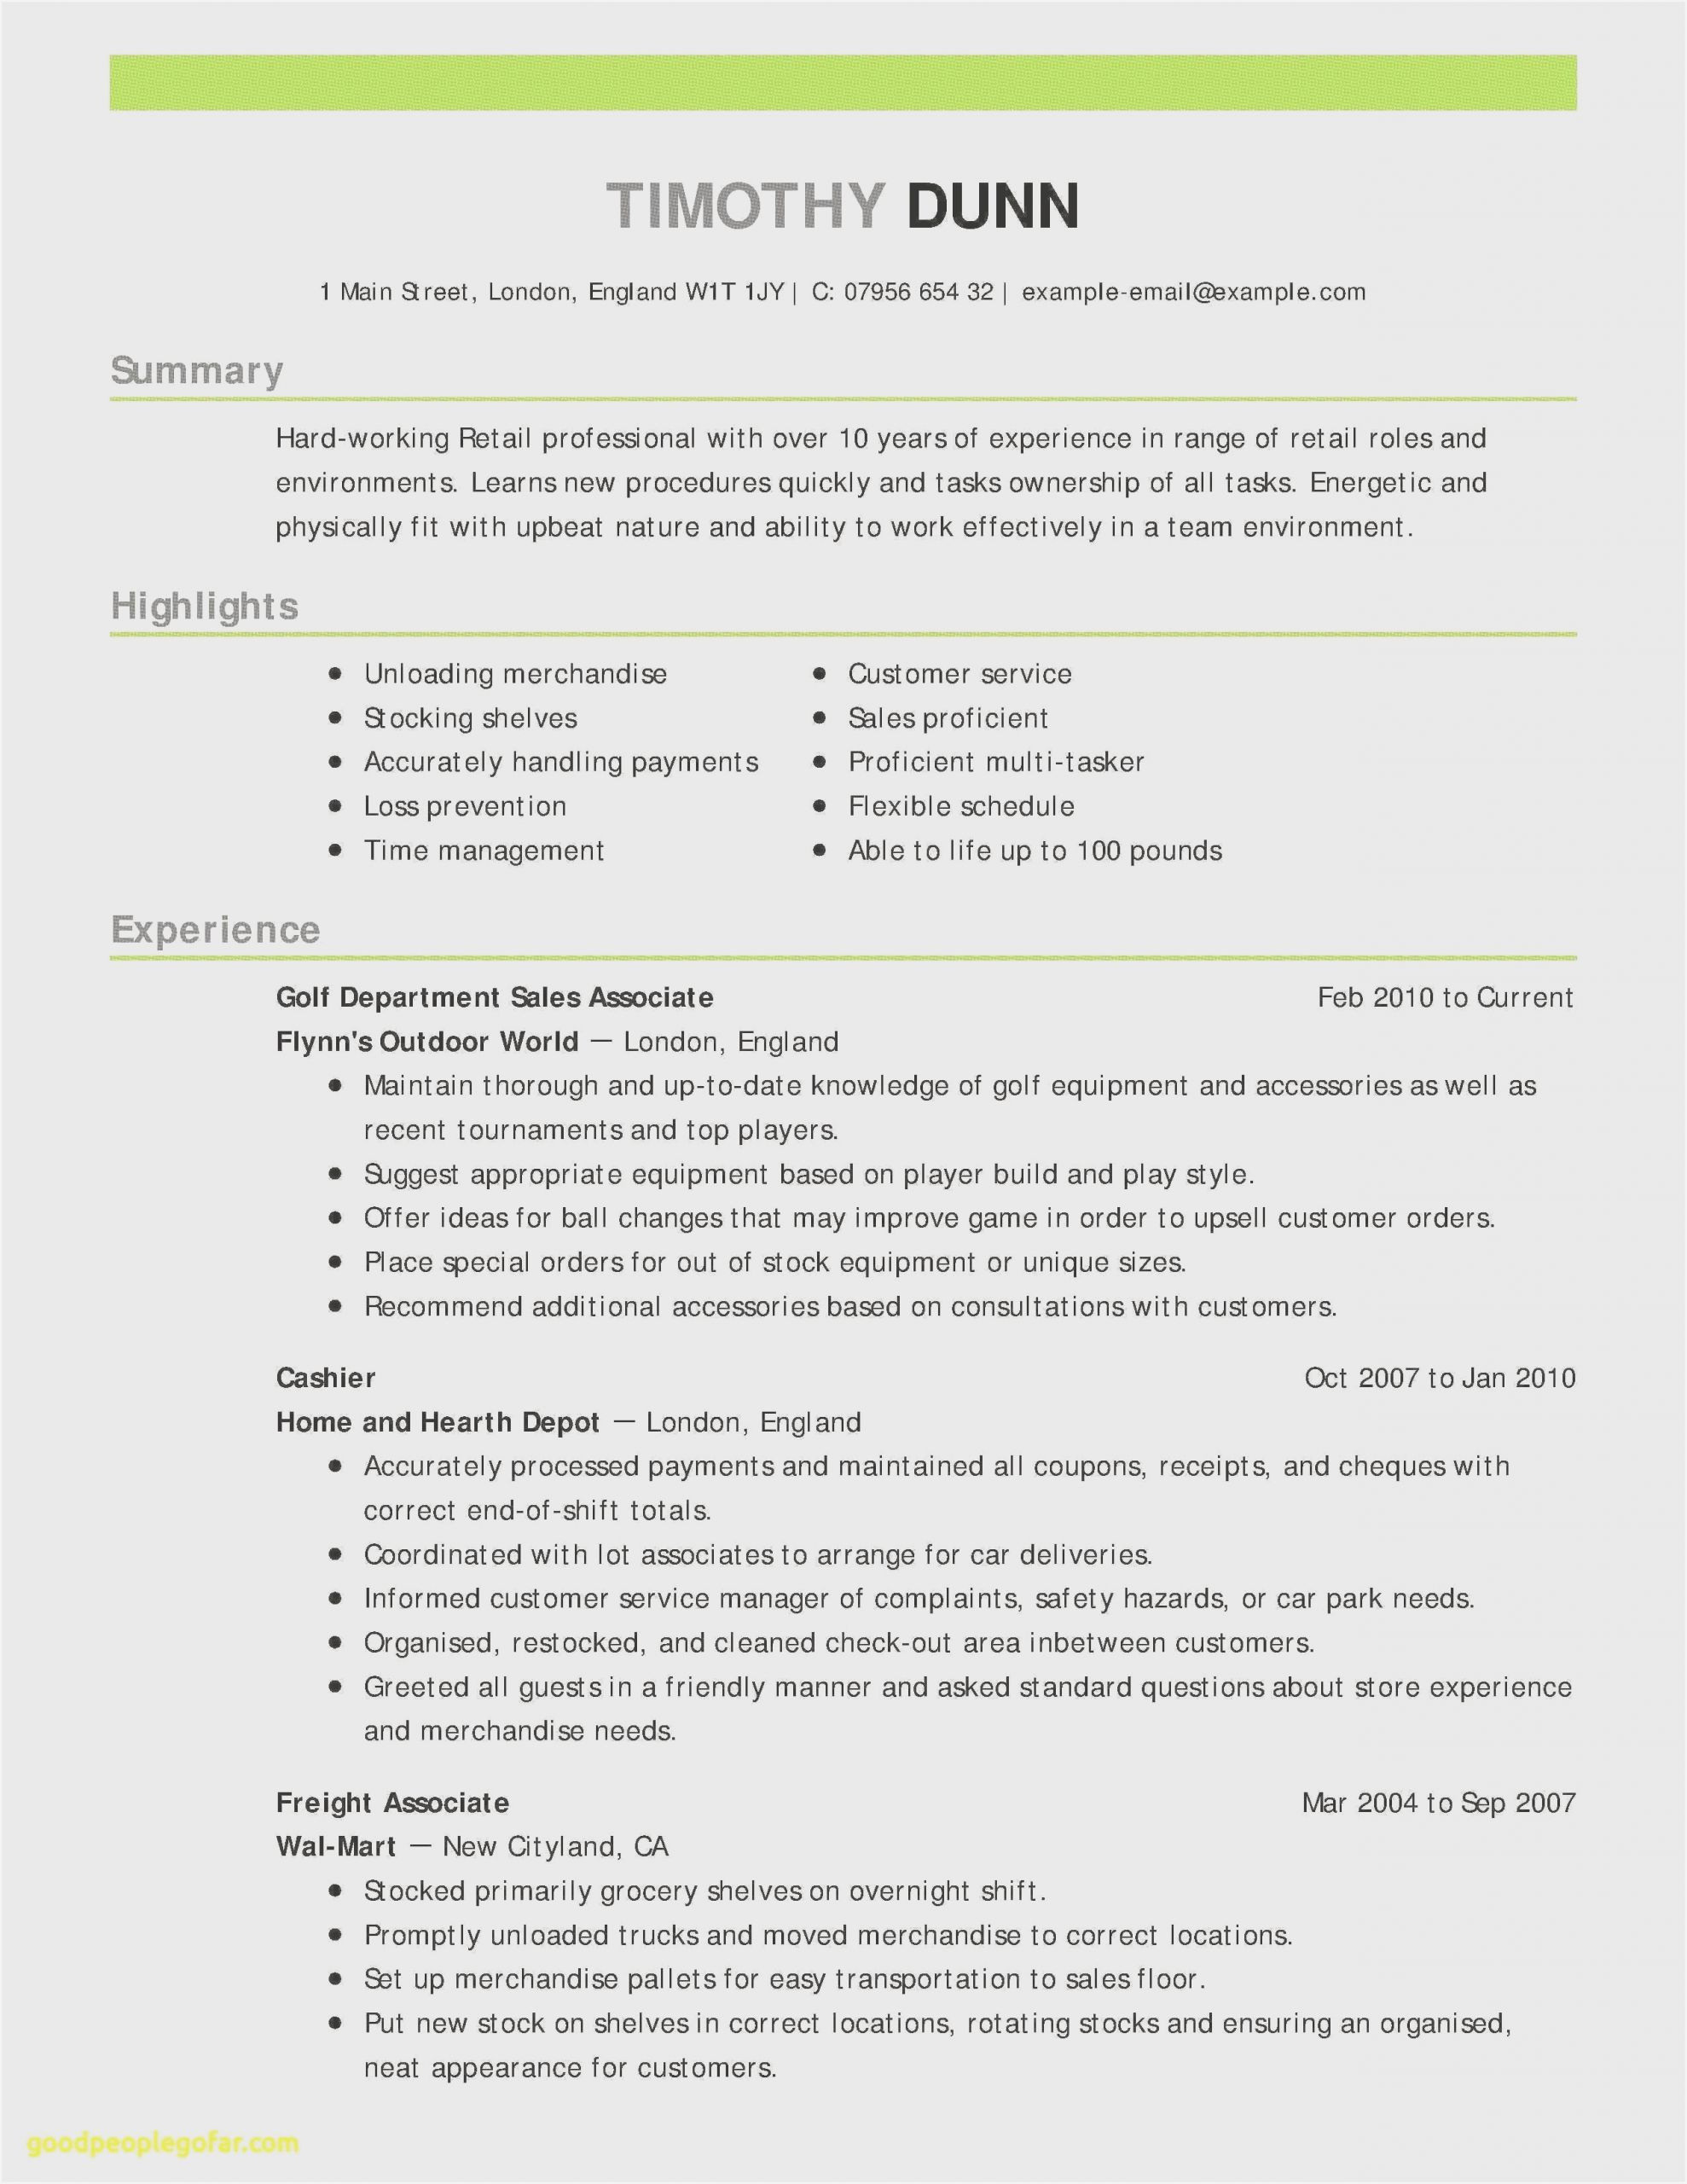 templates of professional resumes resume sample examples samples scaled characteristics Resume Professional Resume Resume Examples